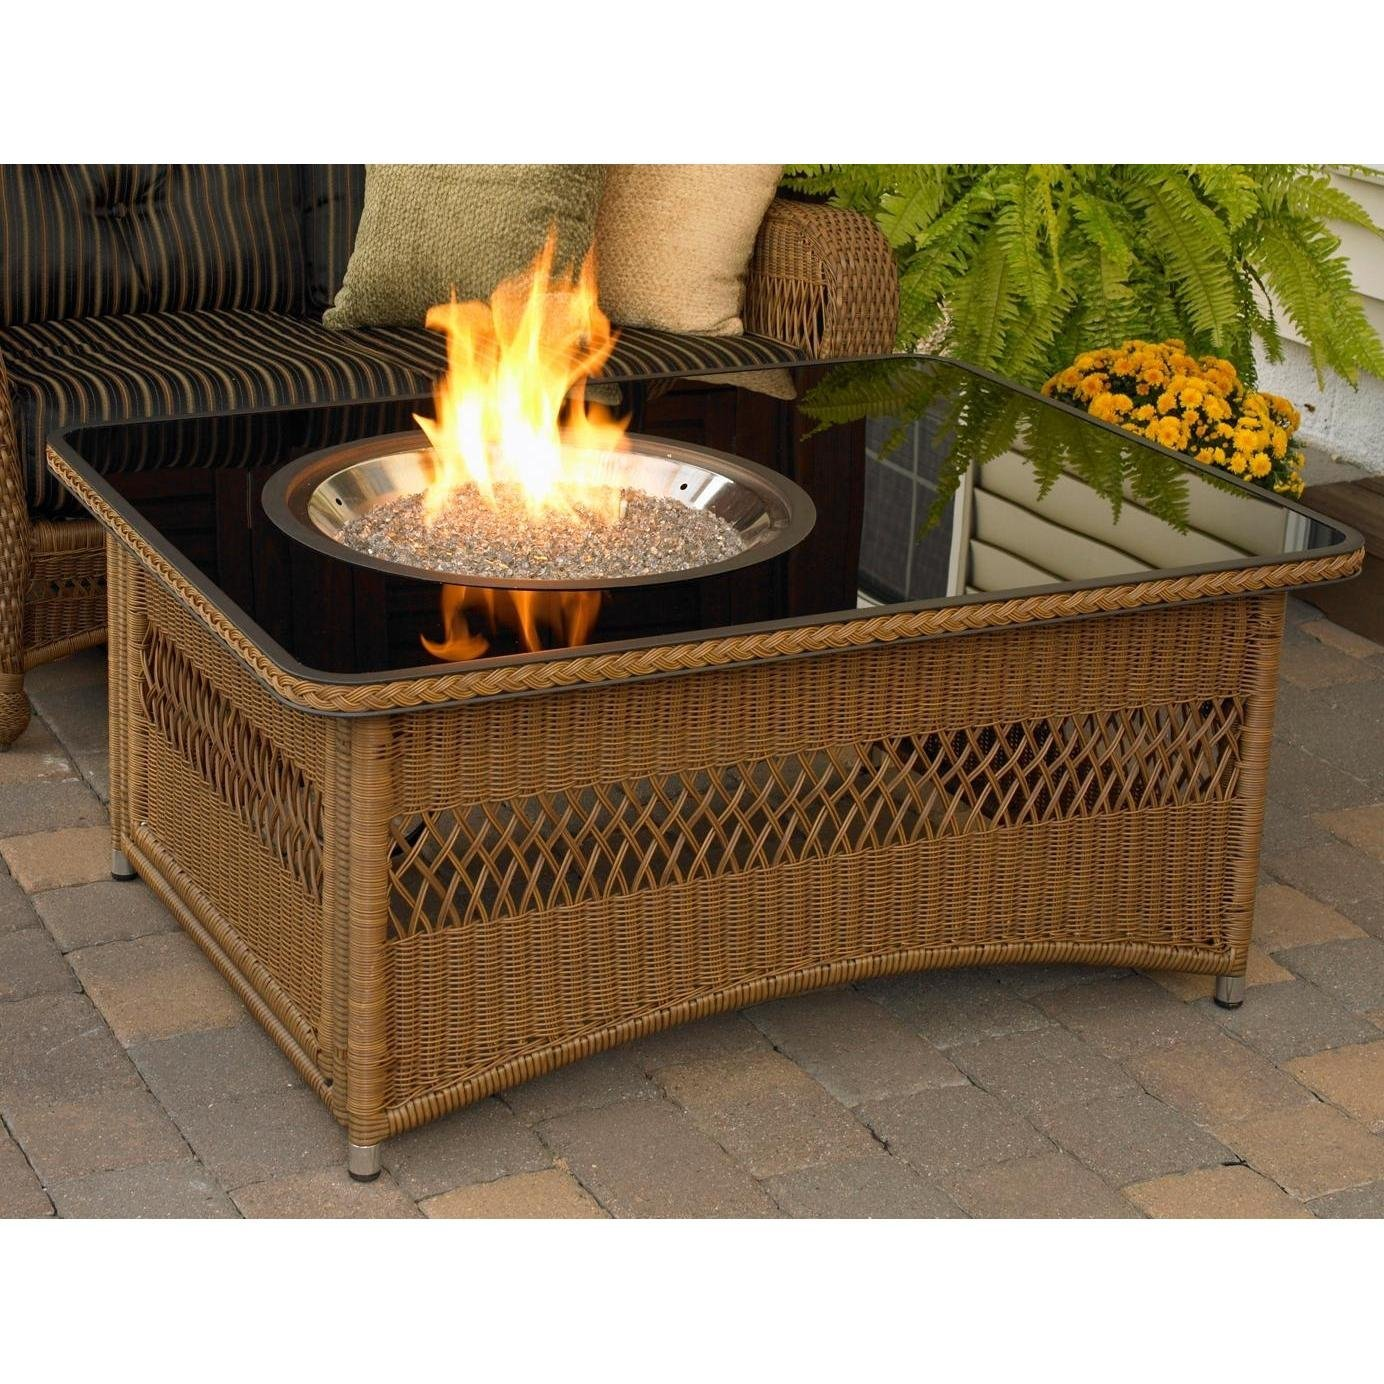 Patio Heaters And Fire Pit Blog Outdoor GreatRoom Company Resin - Resin wicker fire pit table